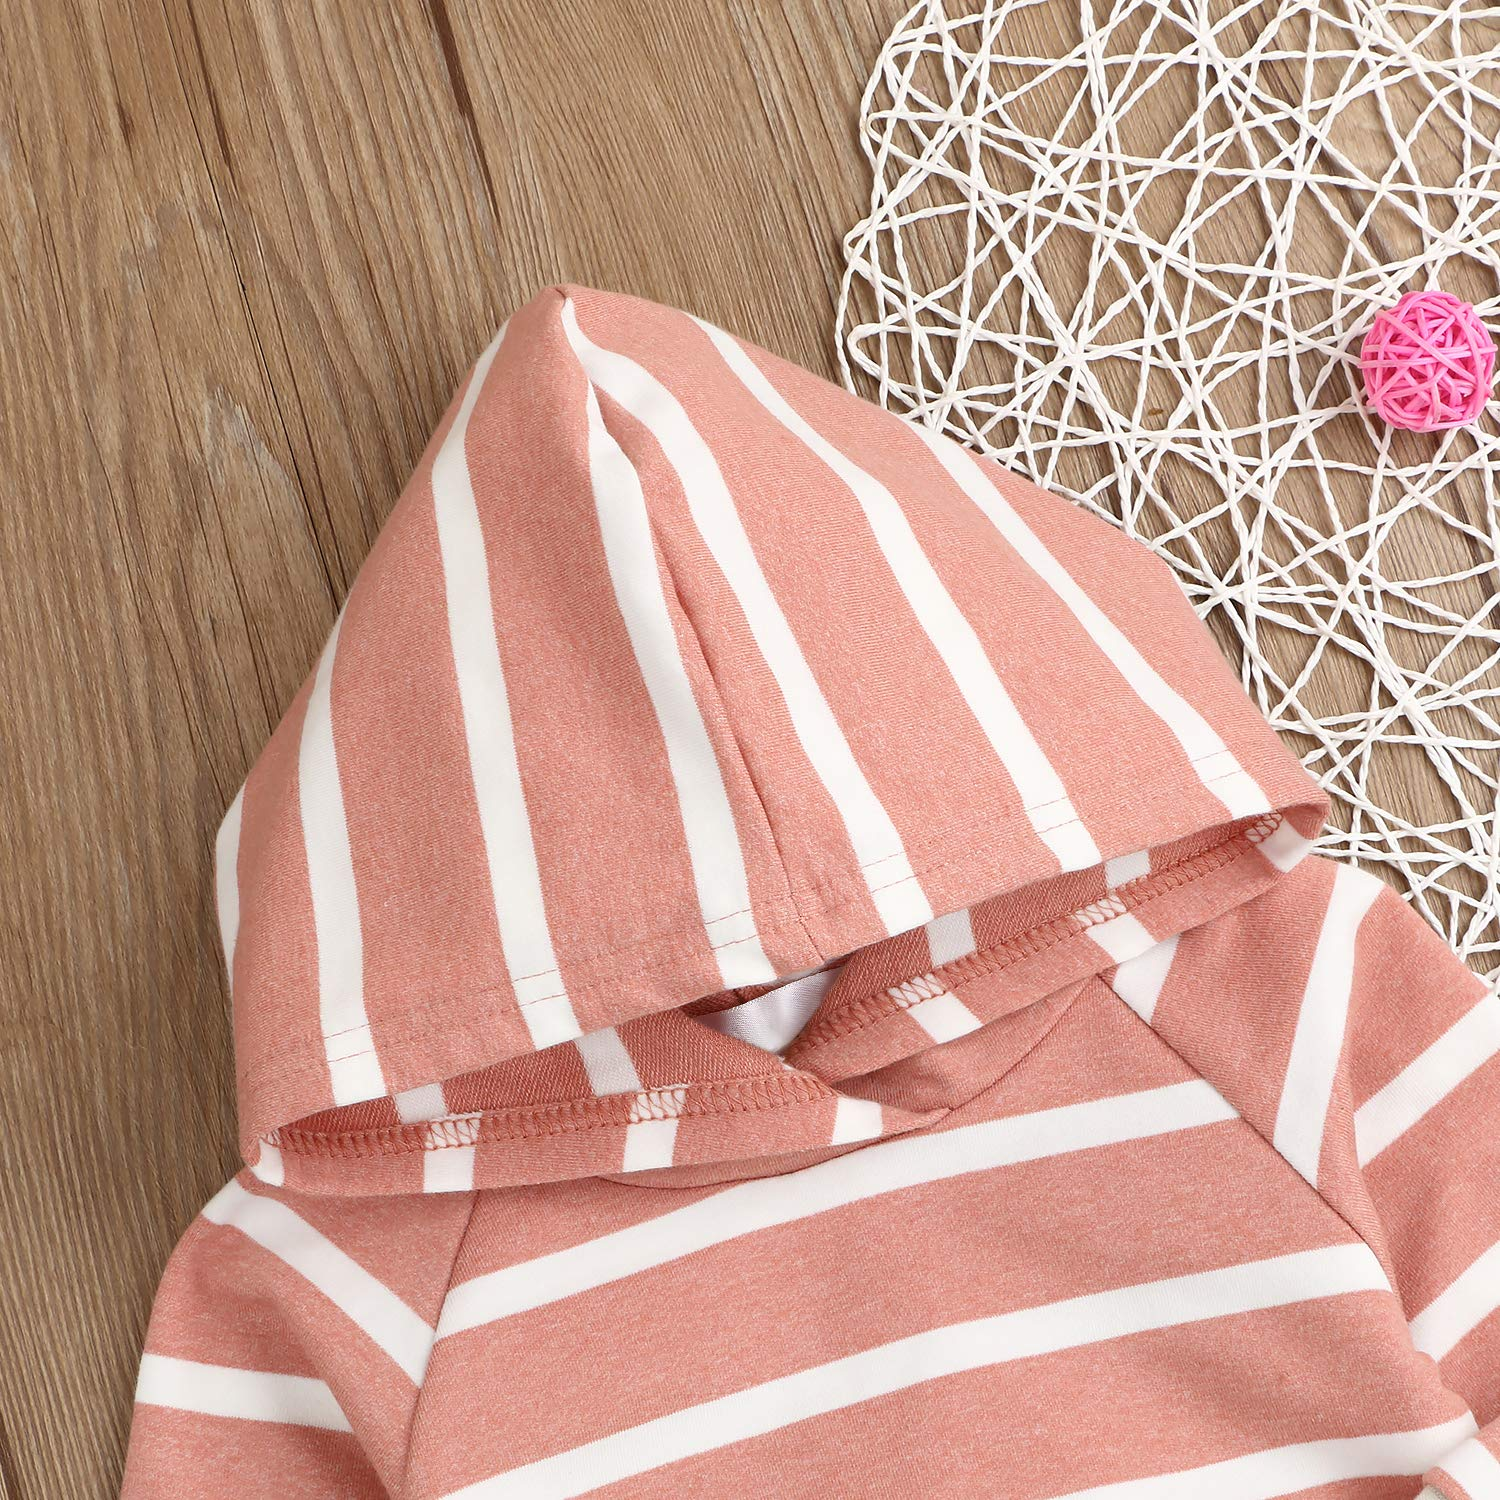 Baby Girls Boys Winter Clothes Set Long Sleeve Striped Hoodie Sweatshirt Pants Outfit Sets for Newborn Infant Toddler Babies